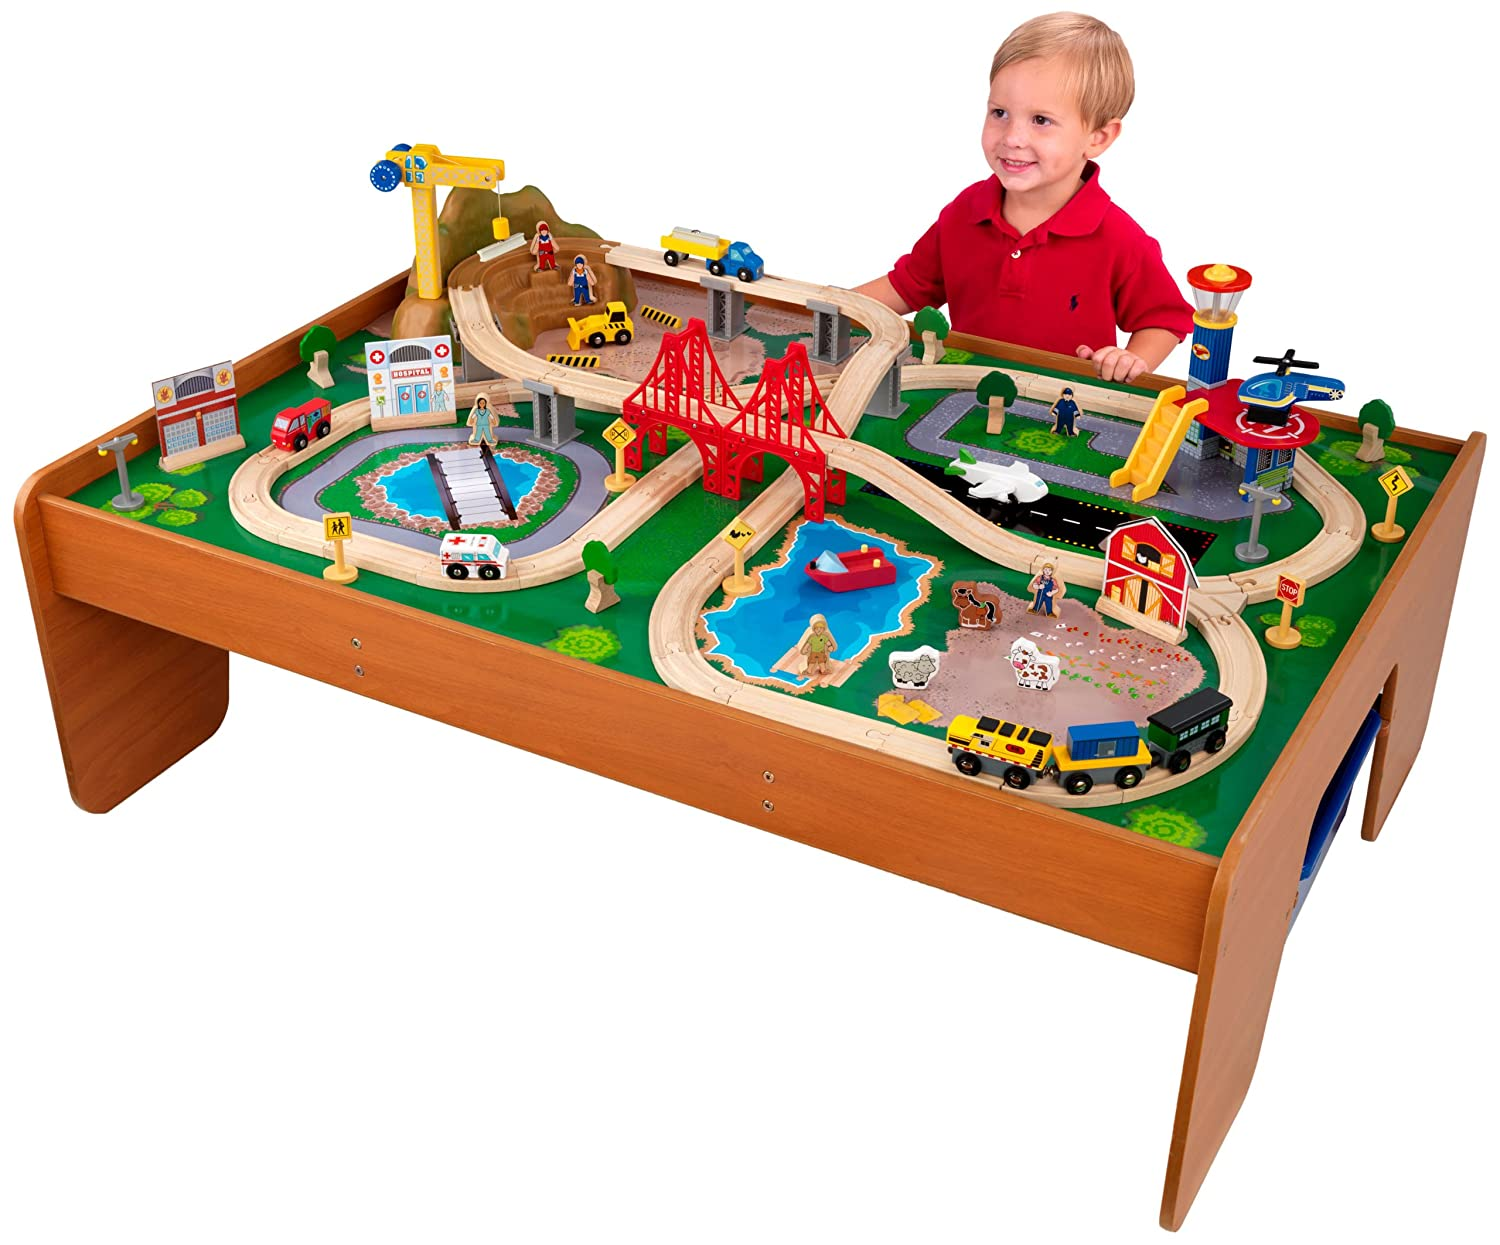 best toys for kids 2016 train sets for youngsters kids at heart. Black Bedroom Furniture Sets. Home Design Ideas